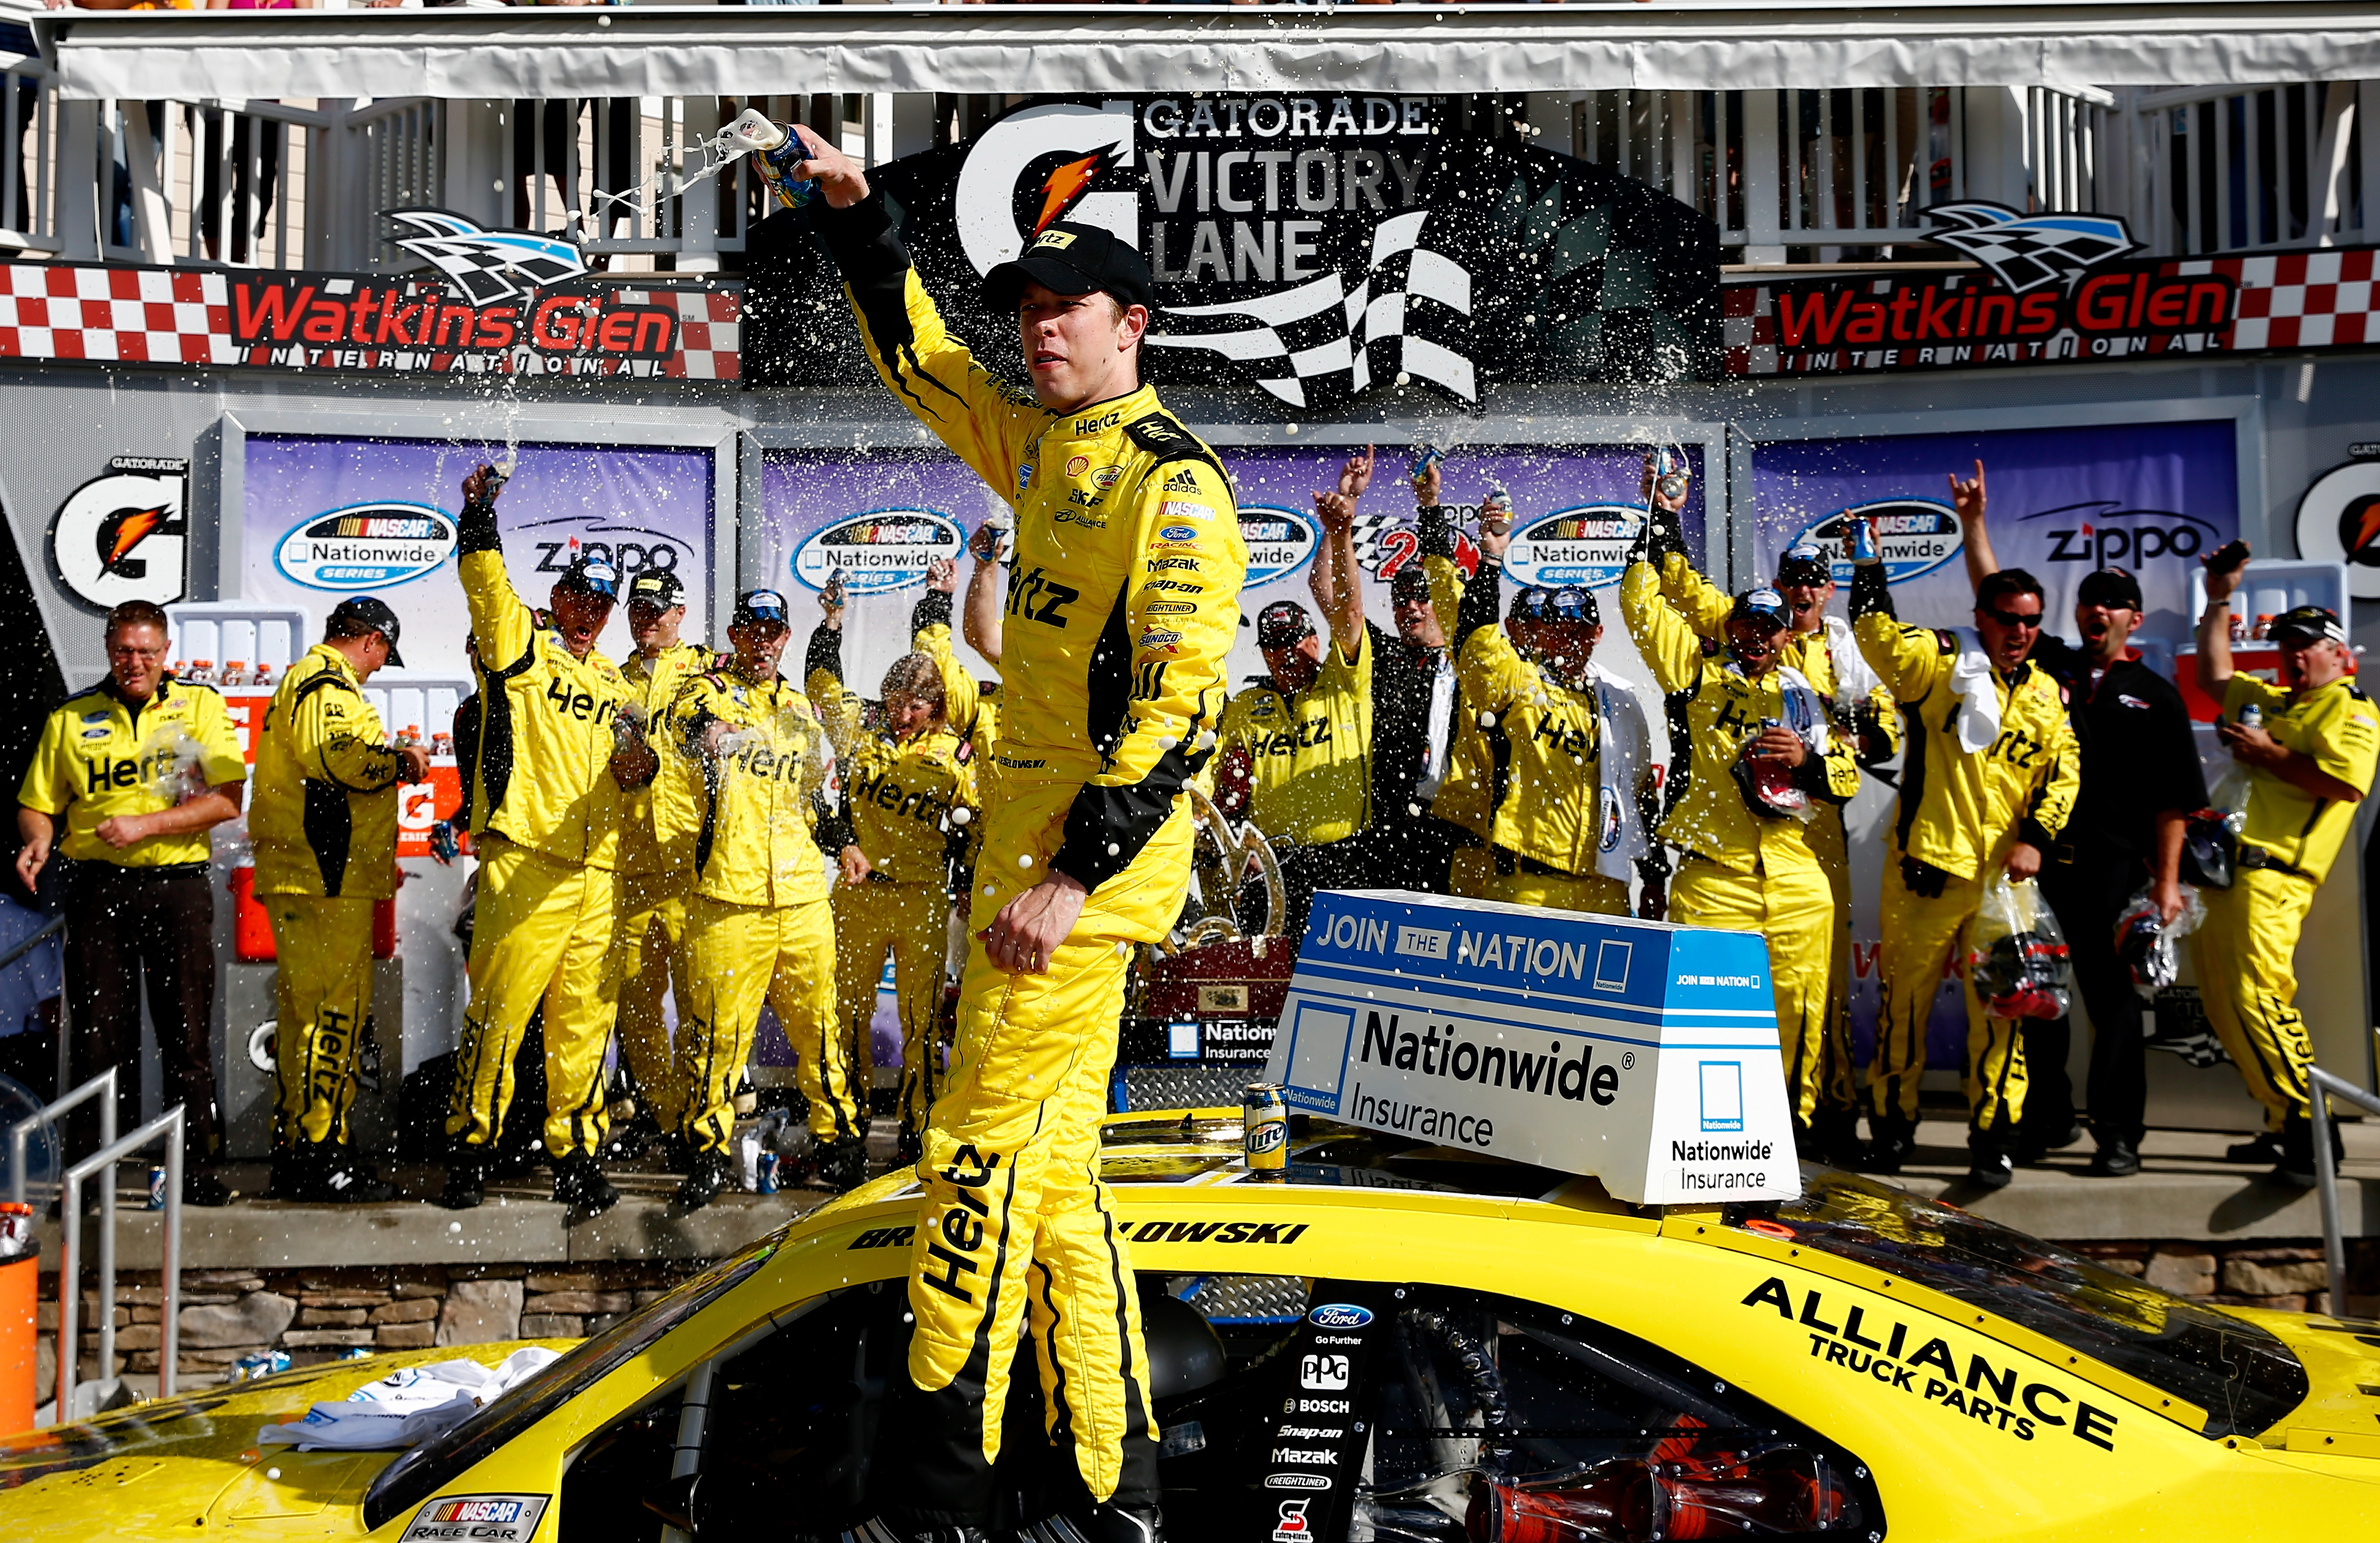 Brad Keselowski experiences that winning feeling in Victory Lane at Watkins Glen for the first time.